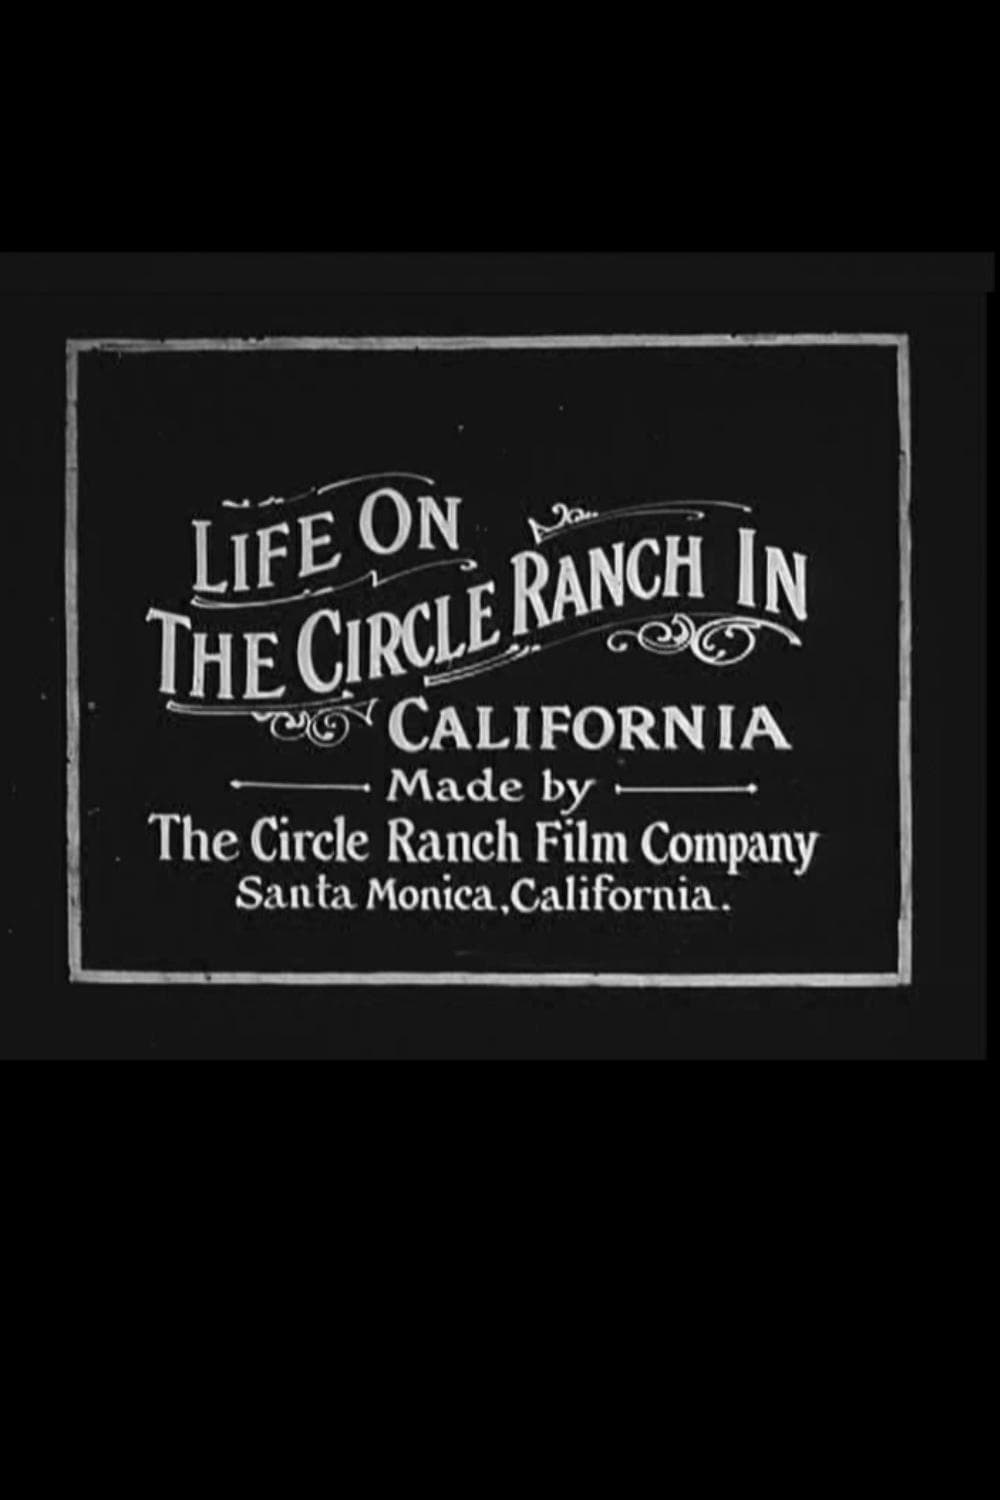 Life on the Circle Ranch in California (1912)